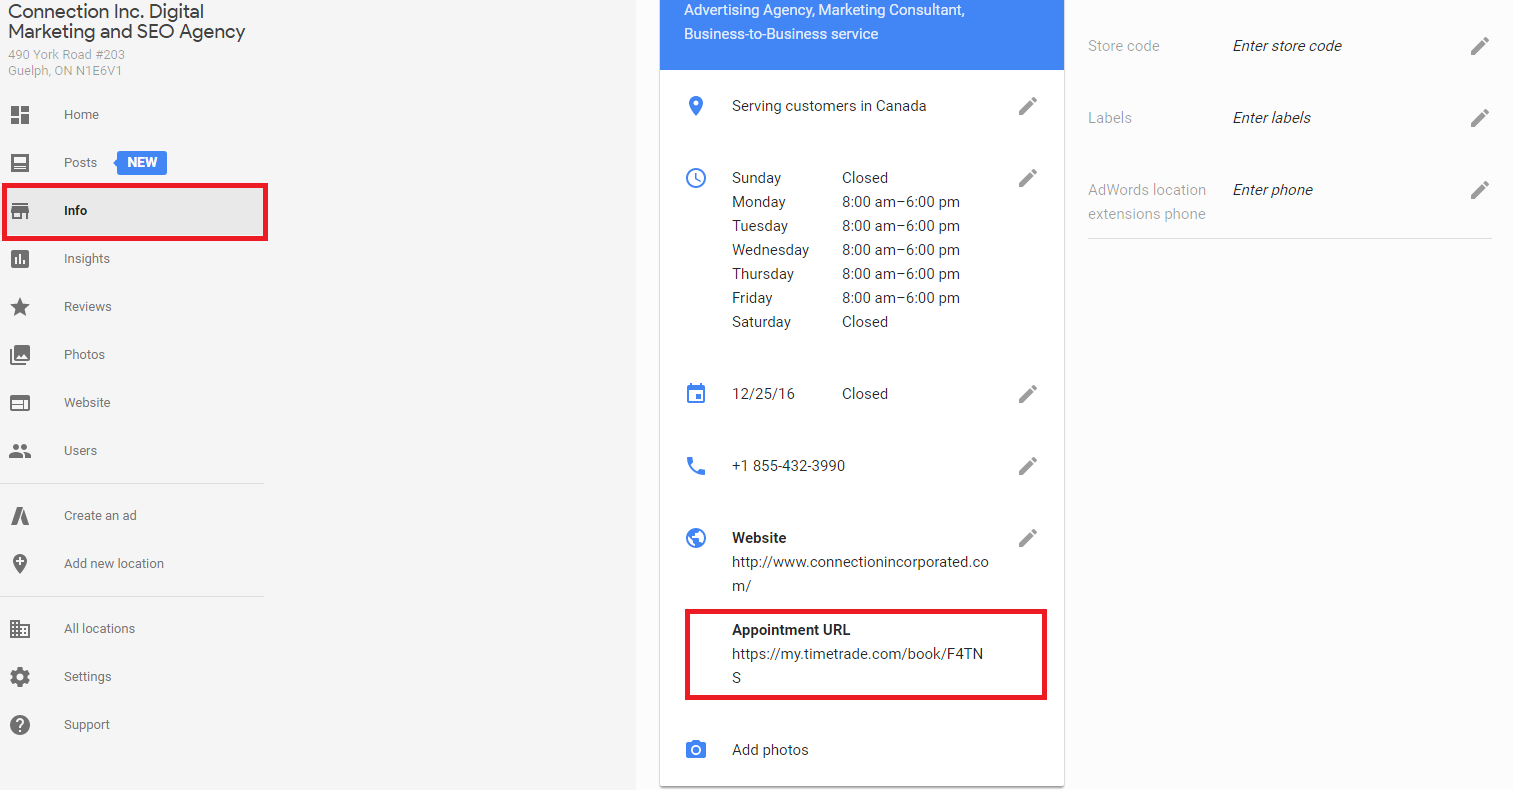 google appointment URL